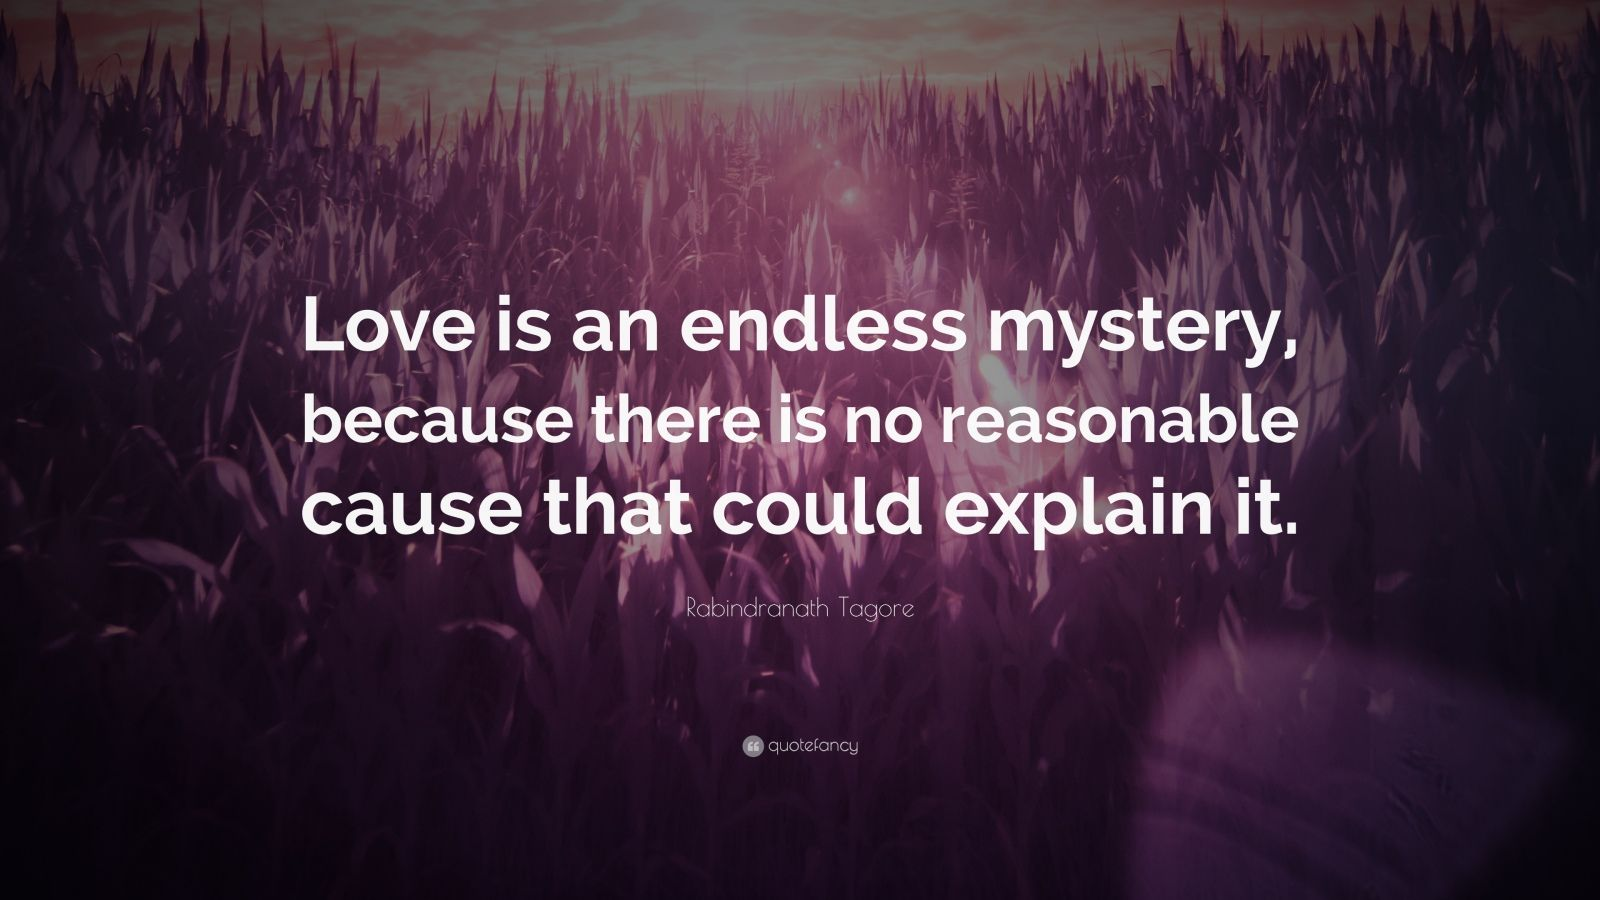 rabindranath tagore quote love is an endless mystery